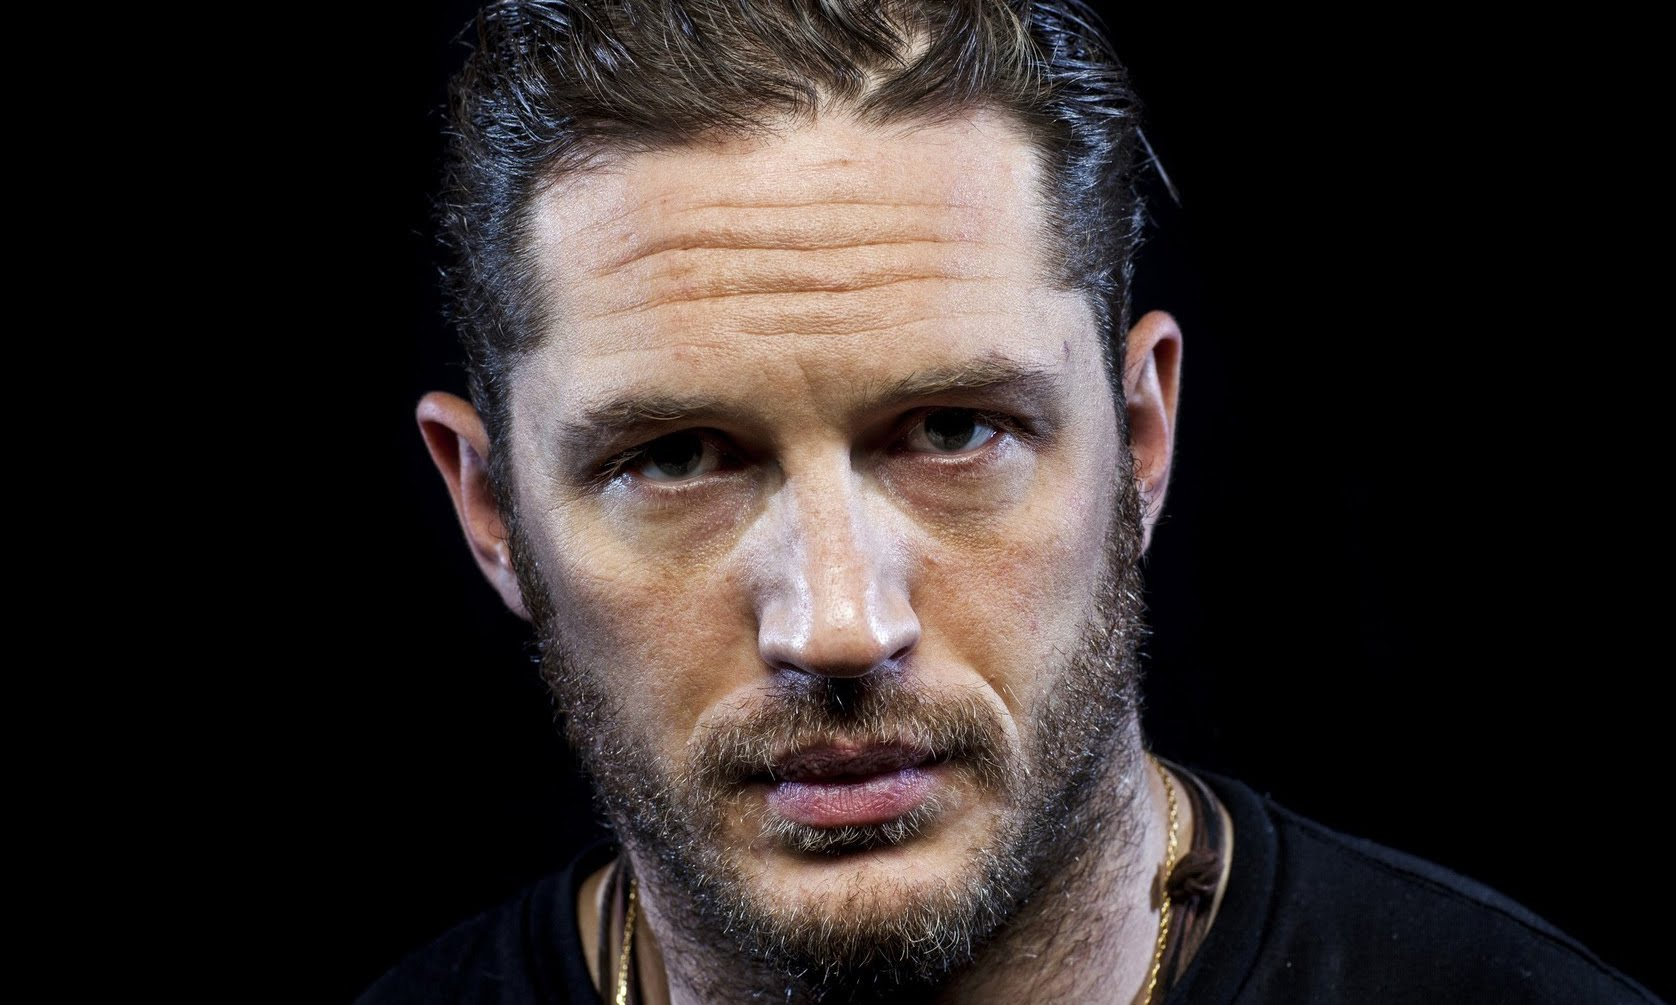 Tom Hardy Wallpapers Celebrity Hq Tom Hardy Pictures 4k Wallpapers 2019